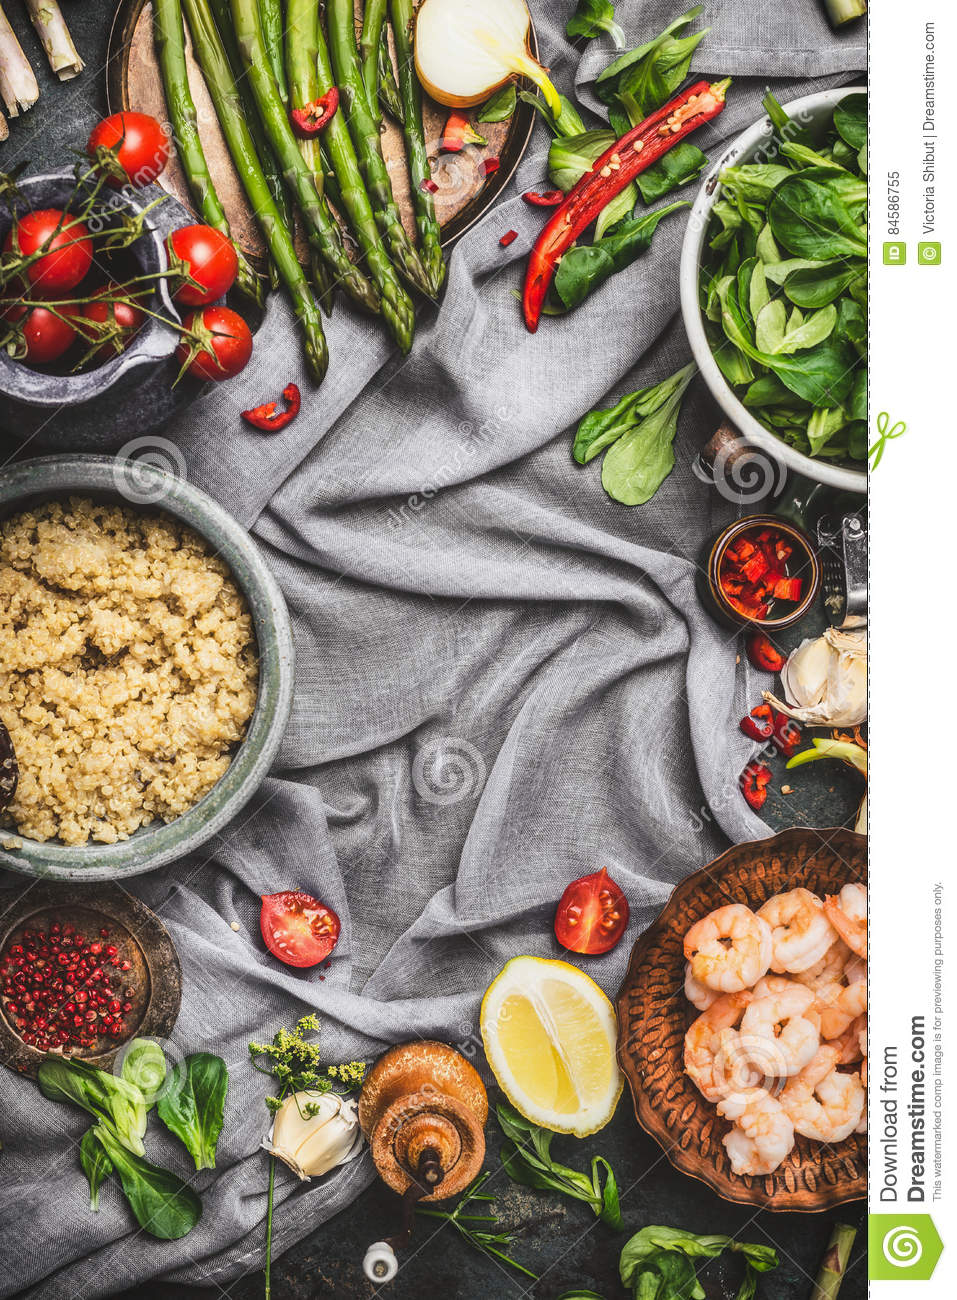 Healthy salad with asparagus and cooked quinoa seeds, preparation on rustic background with various organic vegetables, top view,